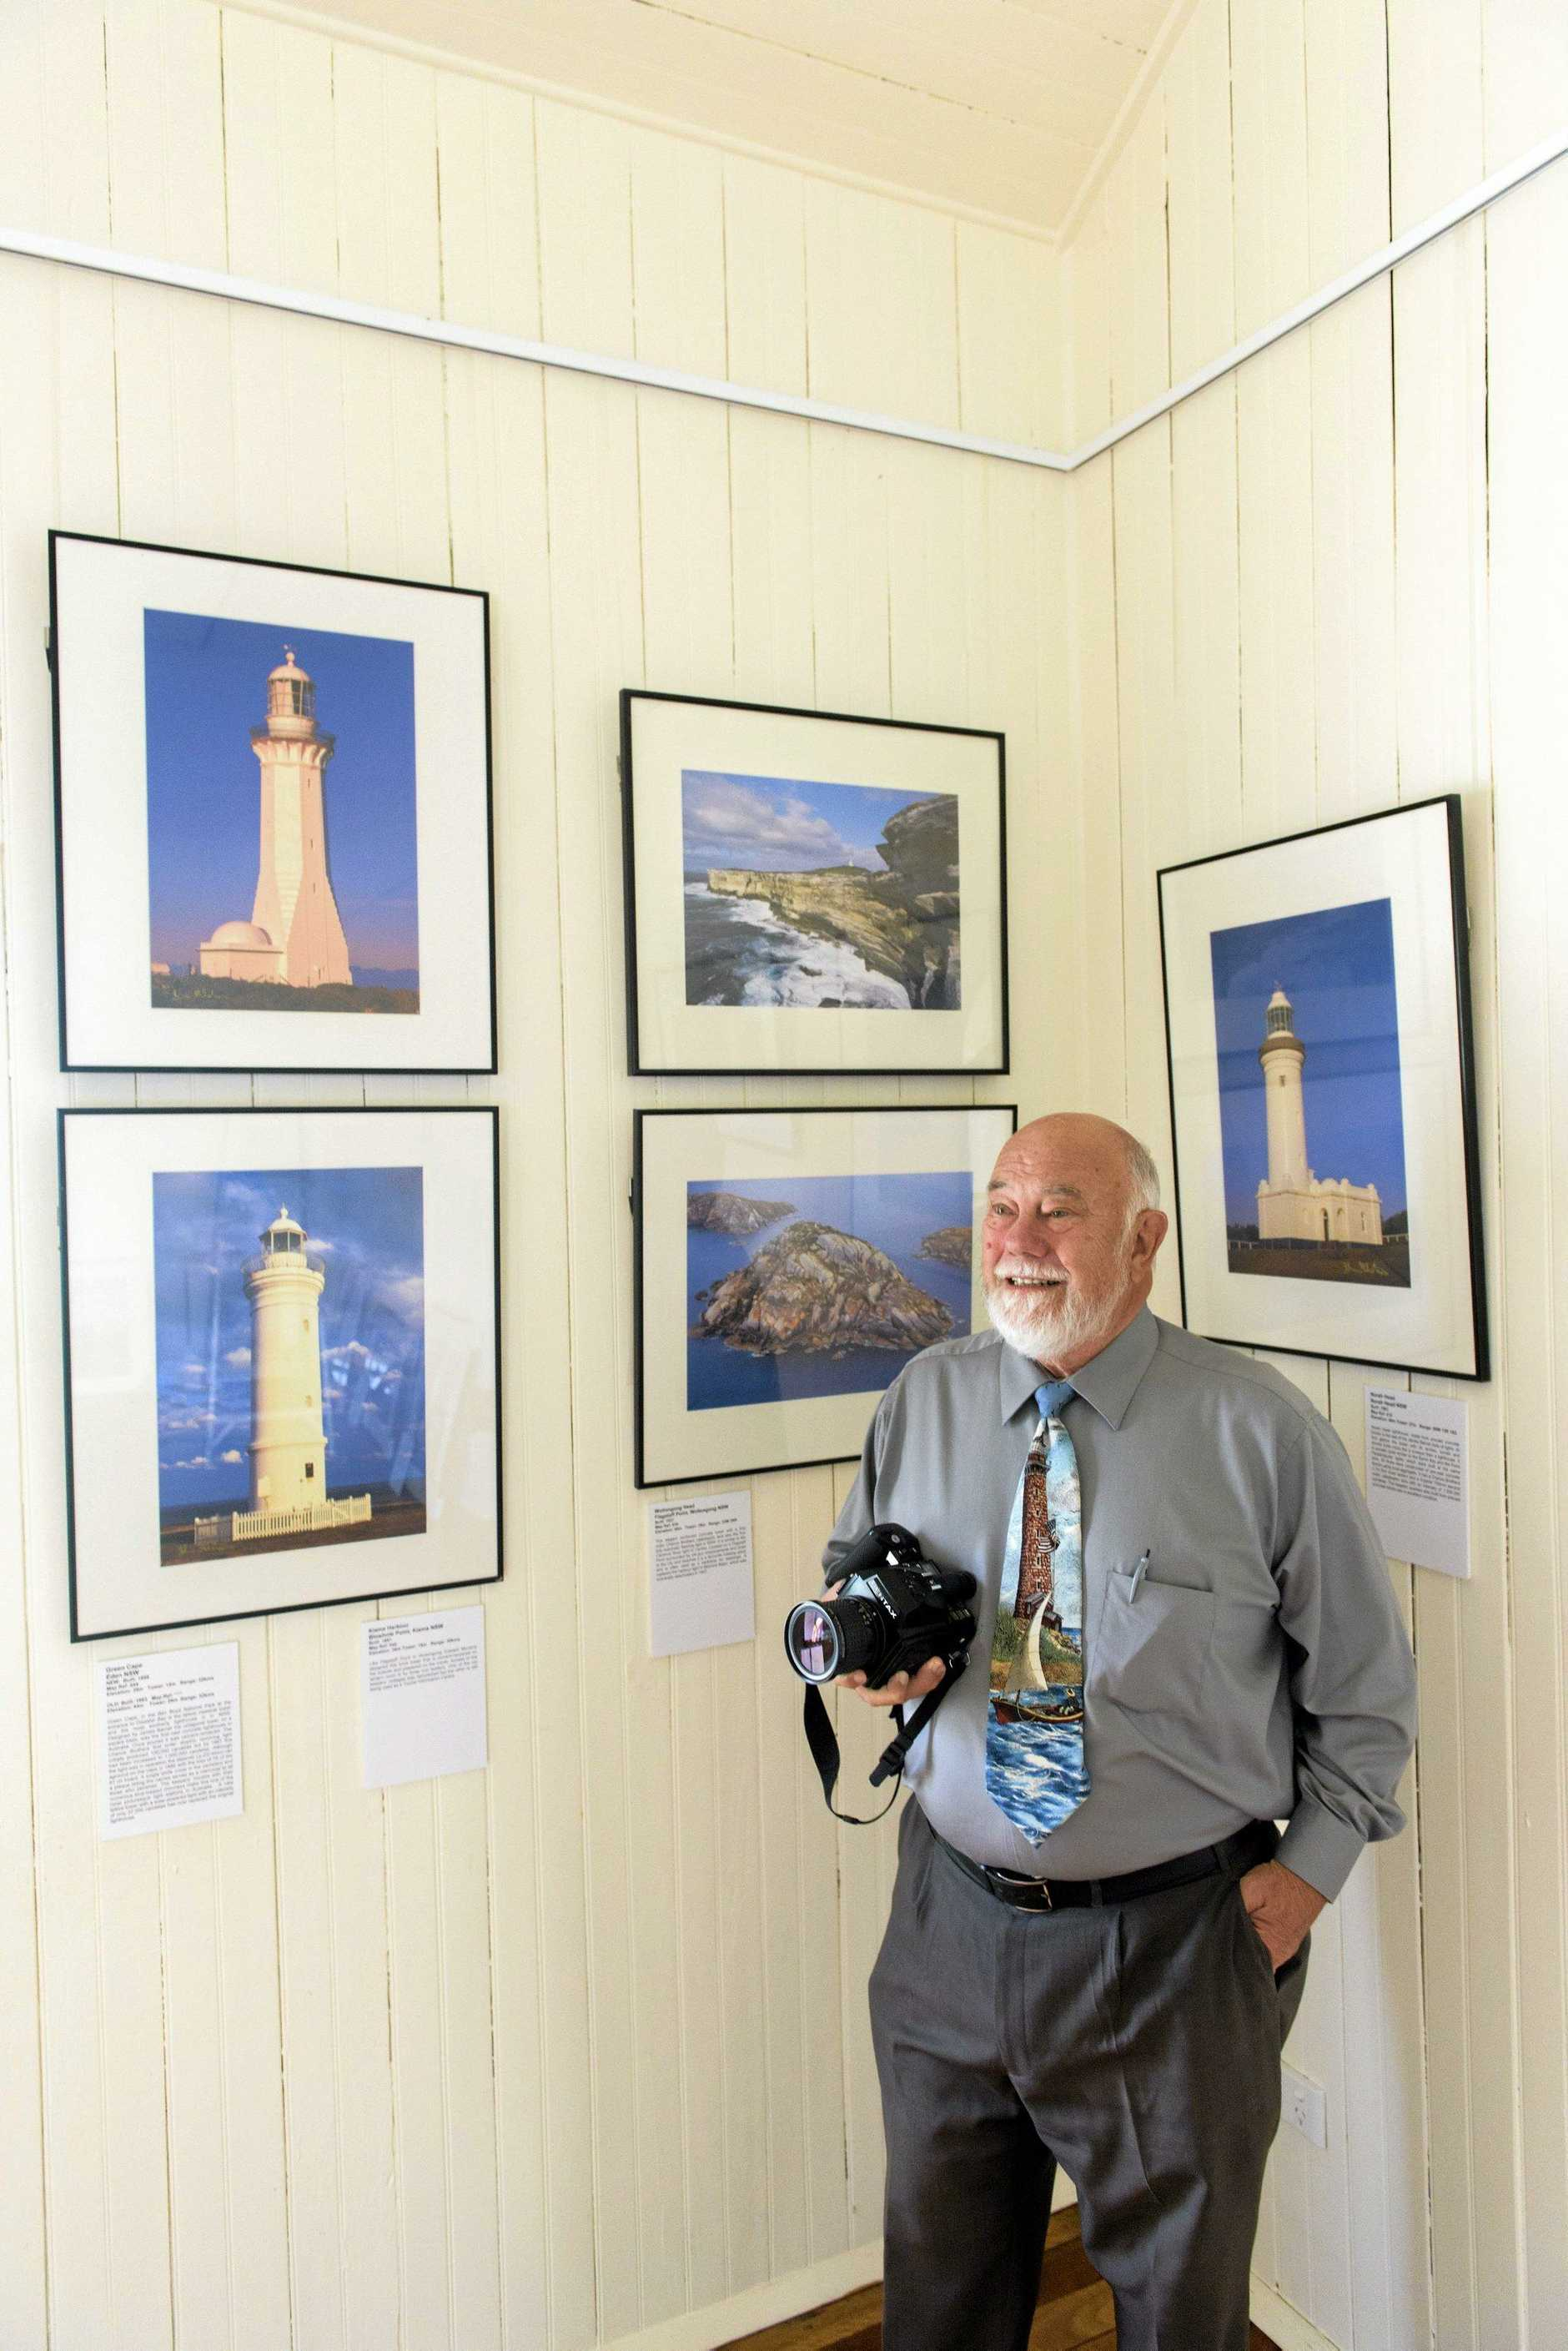 Photographer John Ibbotson with his exhibition of lighthouse photos at the Old Kirk at the Yamba Museum raising money for the Light Up the Darkness program.